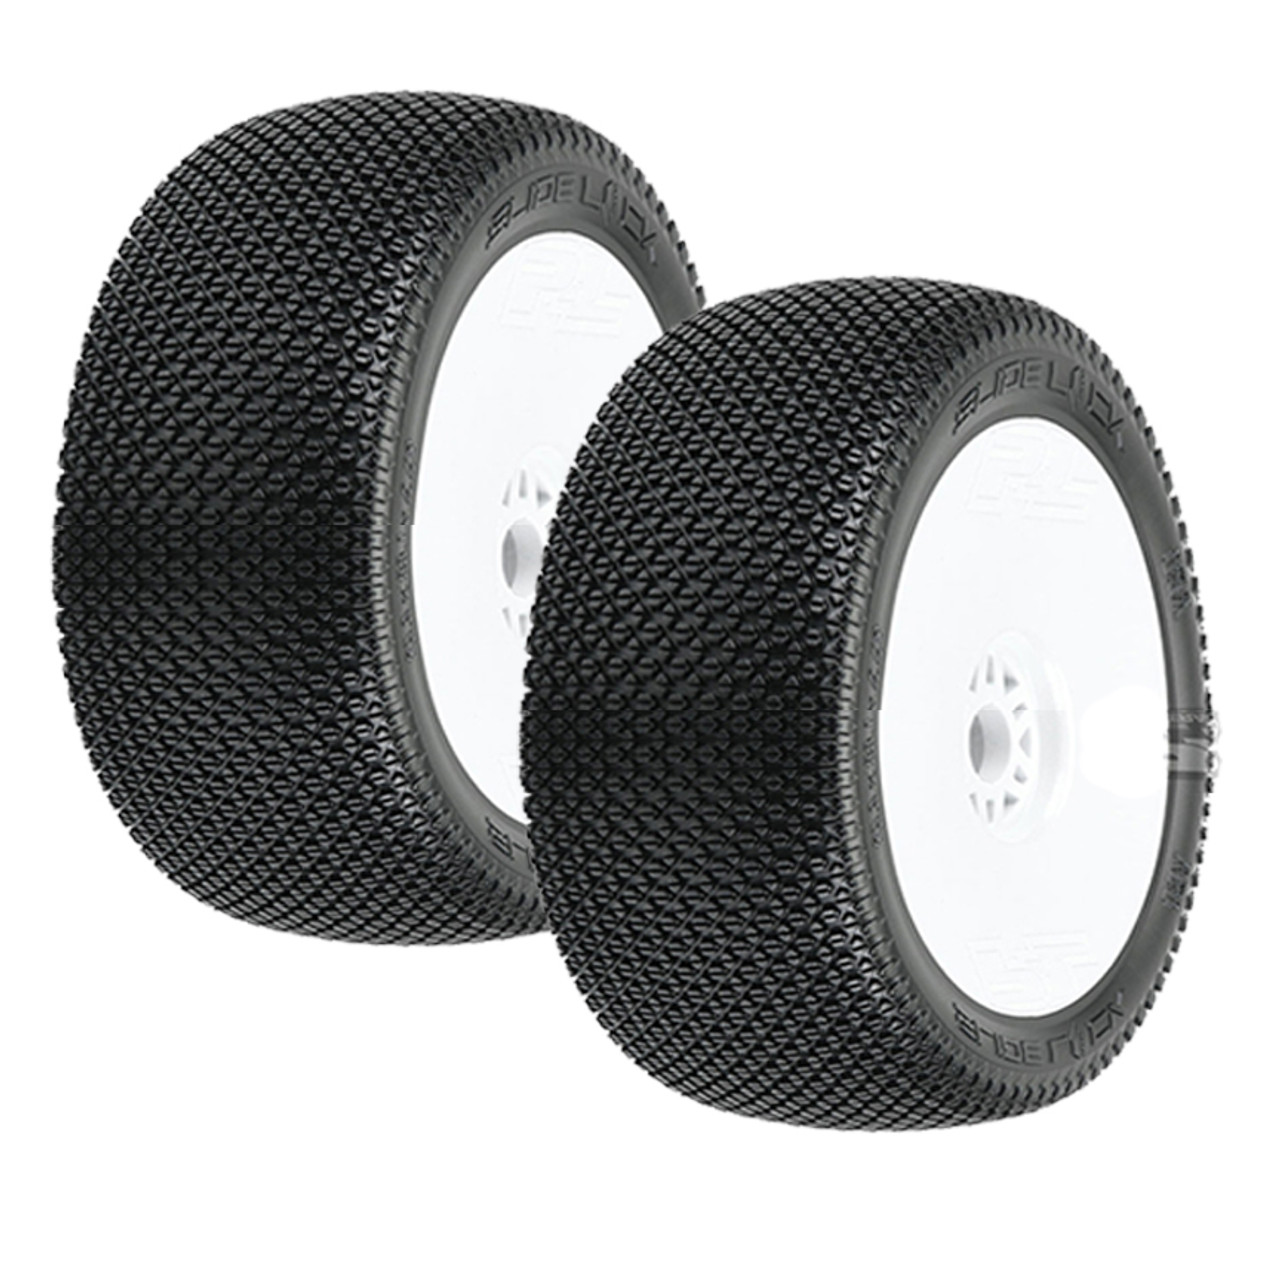 Rims Front Rear 17mm Hex White Kyosho 4WD 1//8 Inferno MP10: Dish Wheels